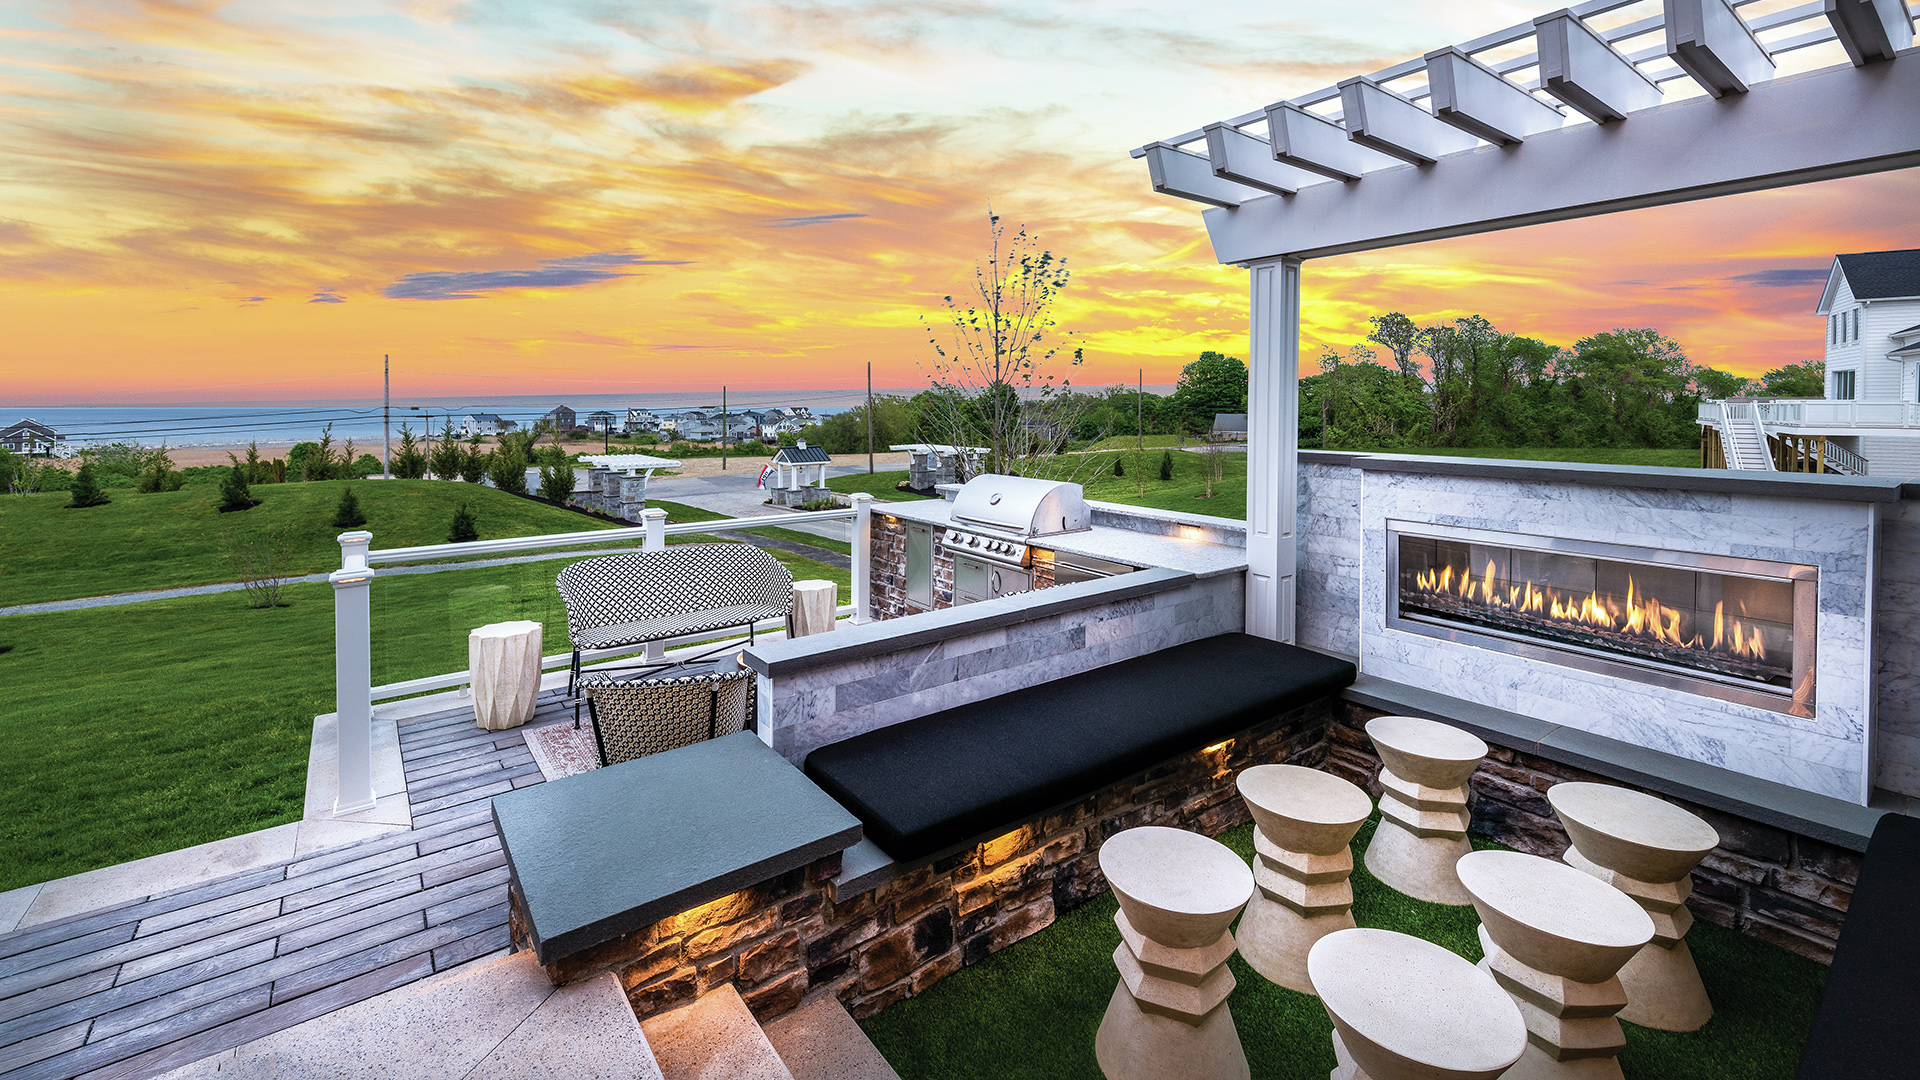 Take in the sunset by the fire in this outdoor living area